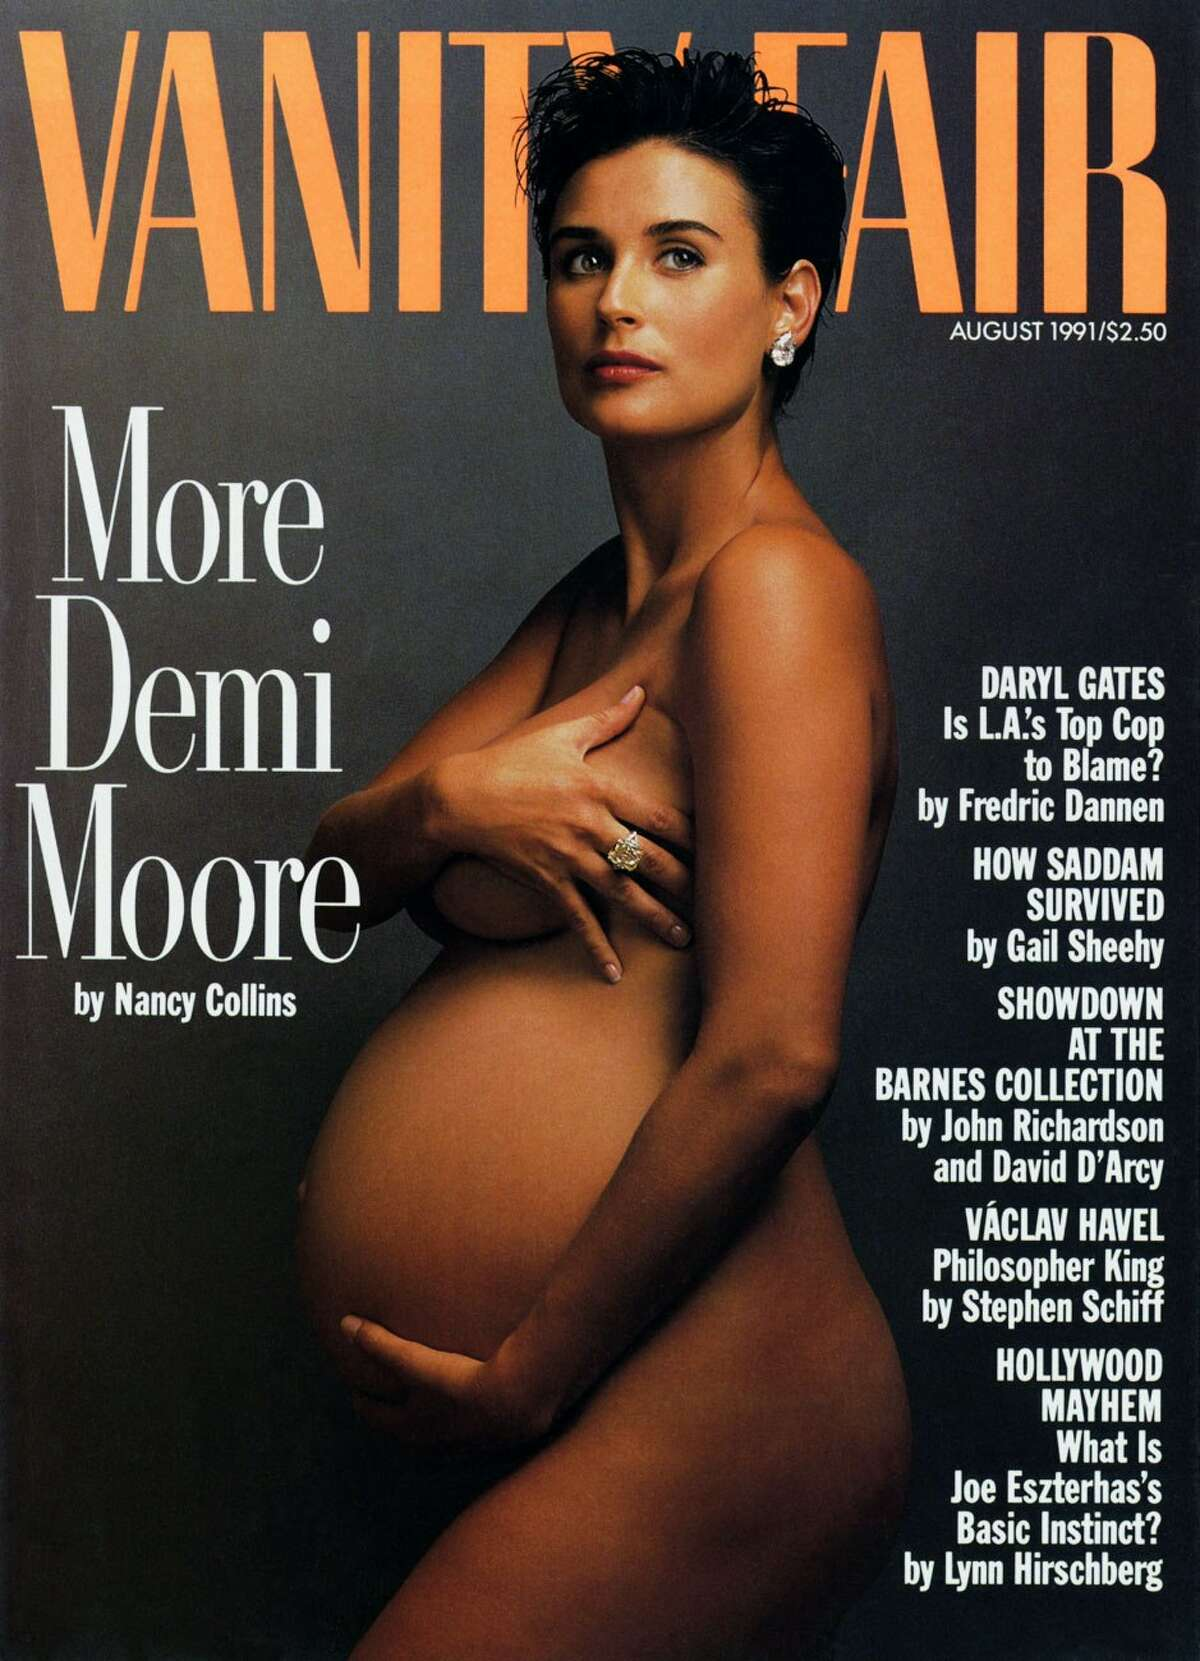 Demi Moore posed nude and seven months pregnant on the cover of Vanity Fair in 1991 and started a trend.